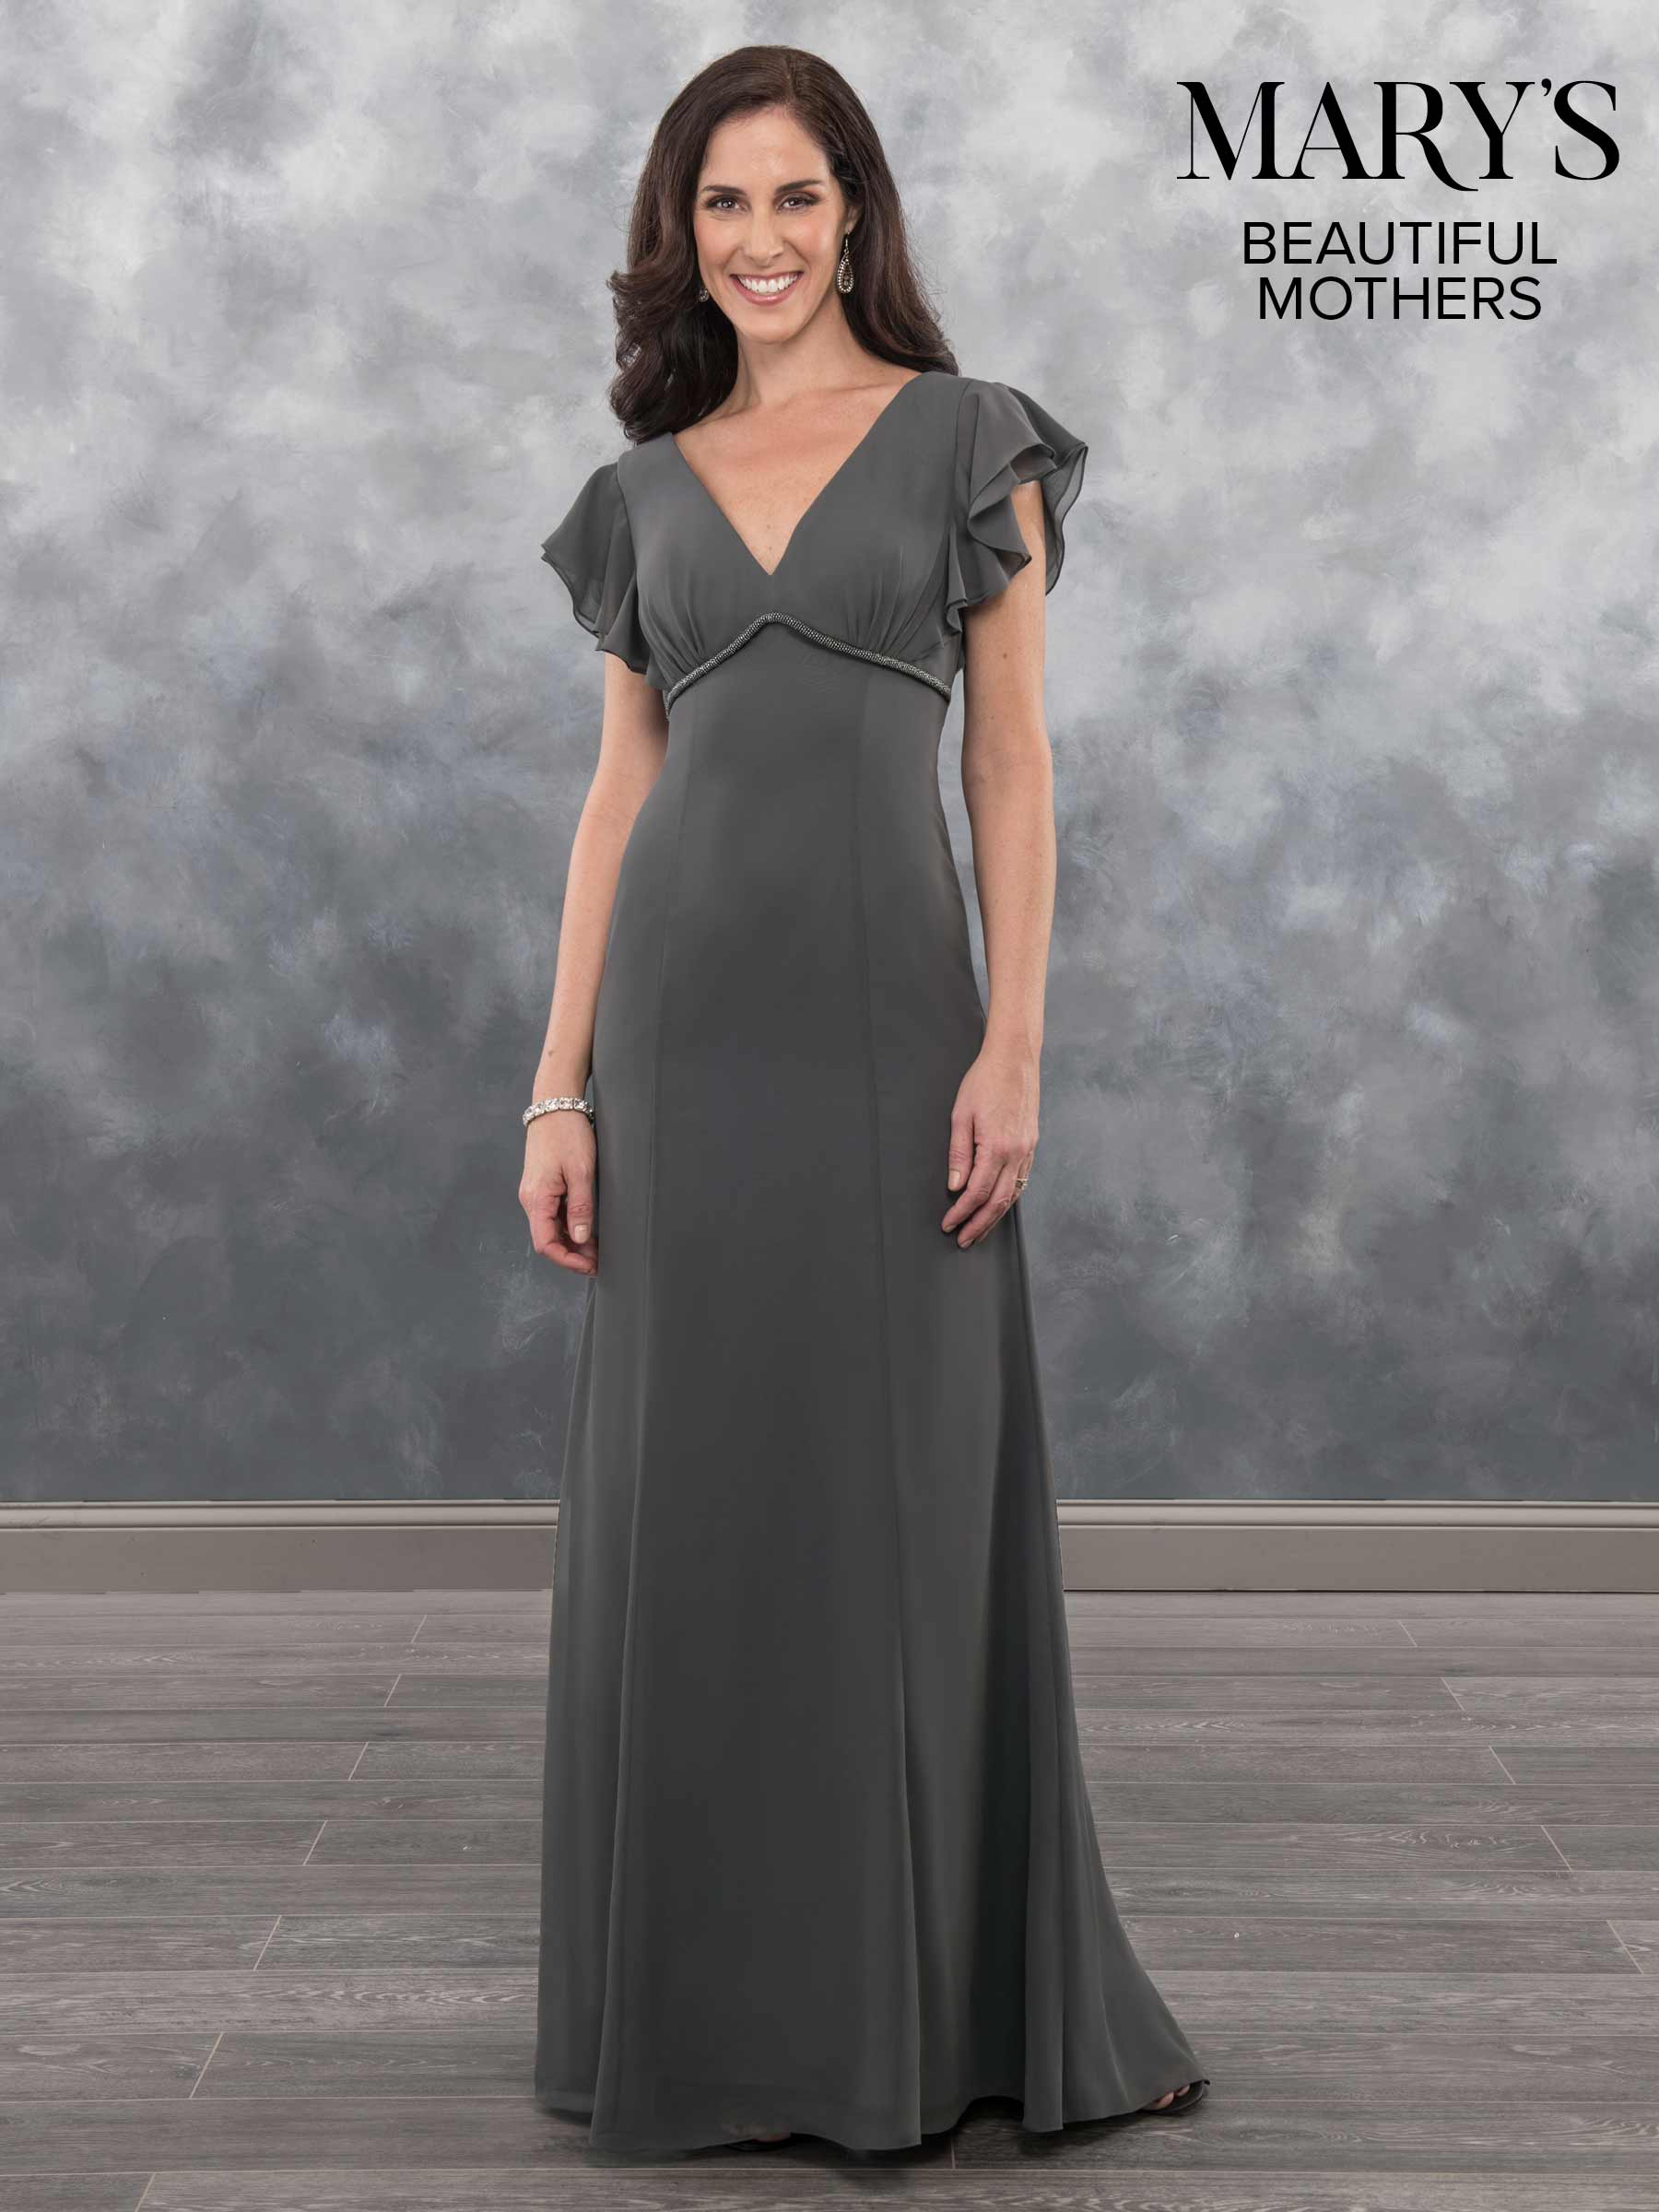 Mother Of The Bride Dresses | Beautiful Mothers | Style - MB8031